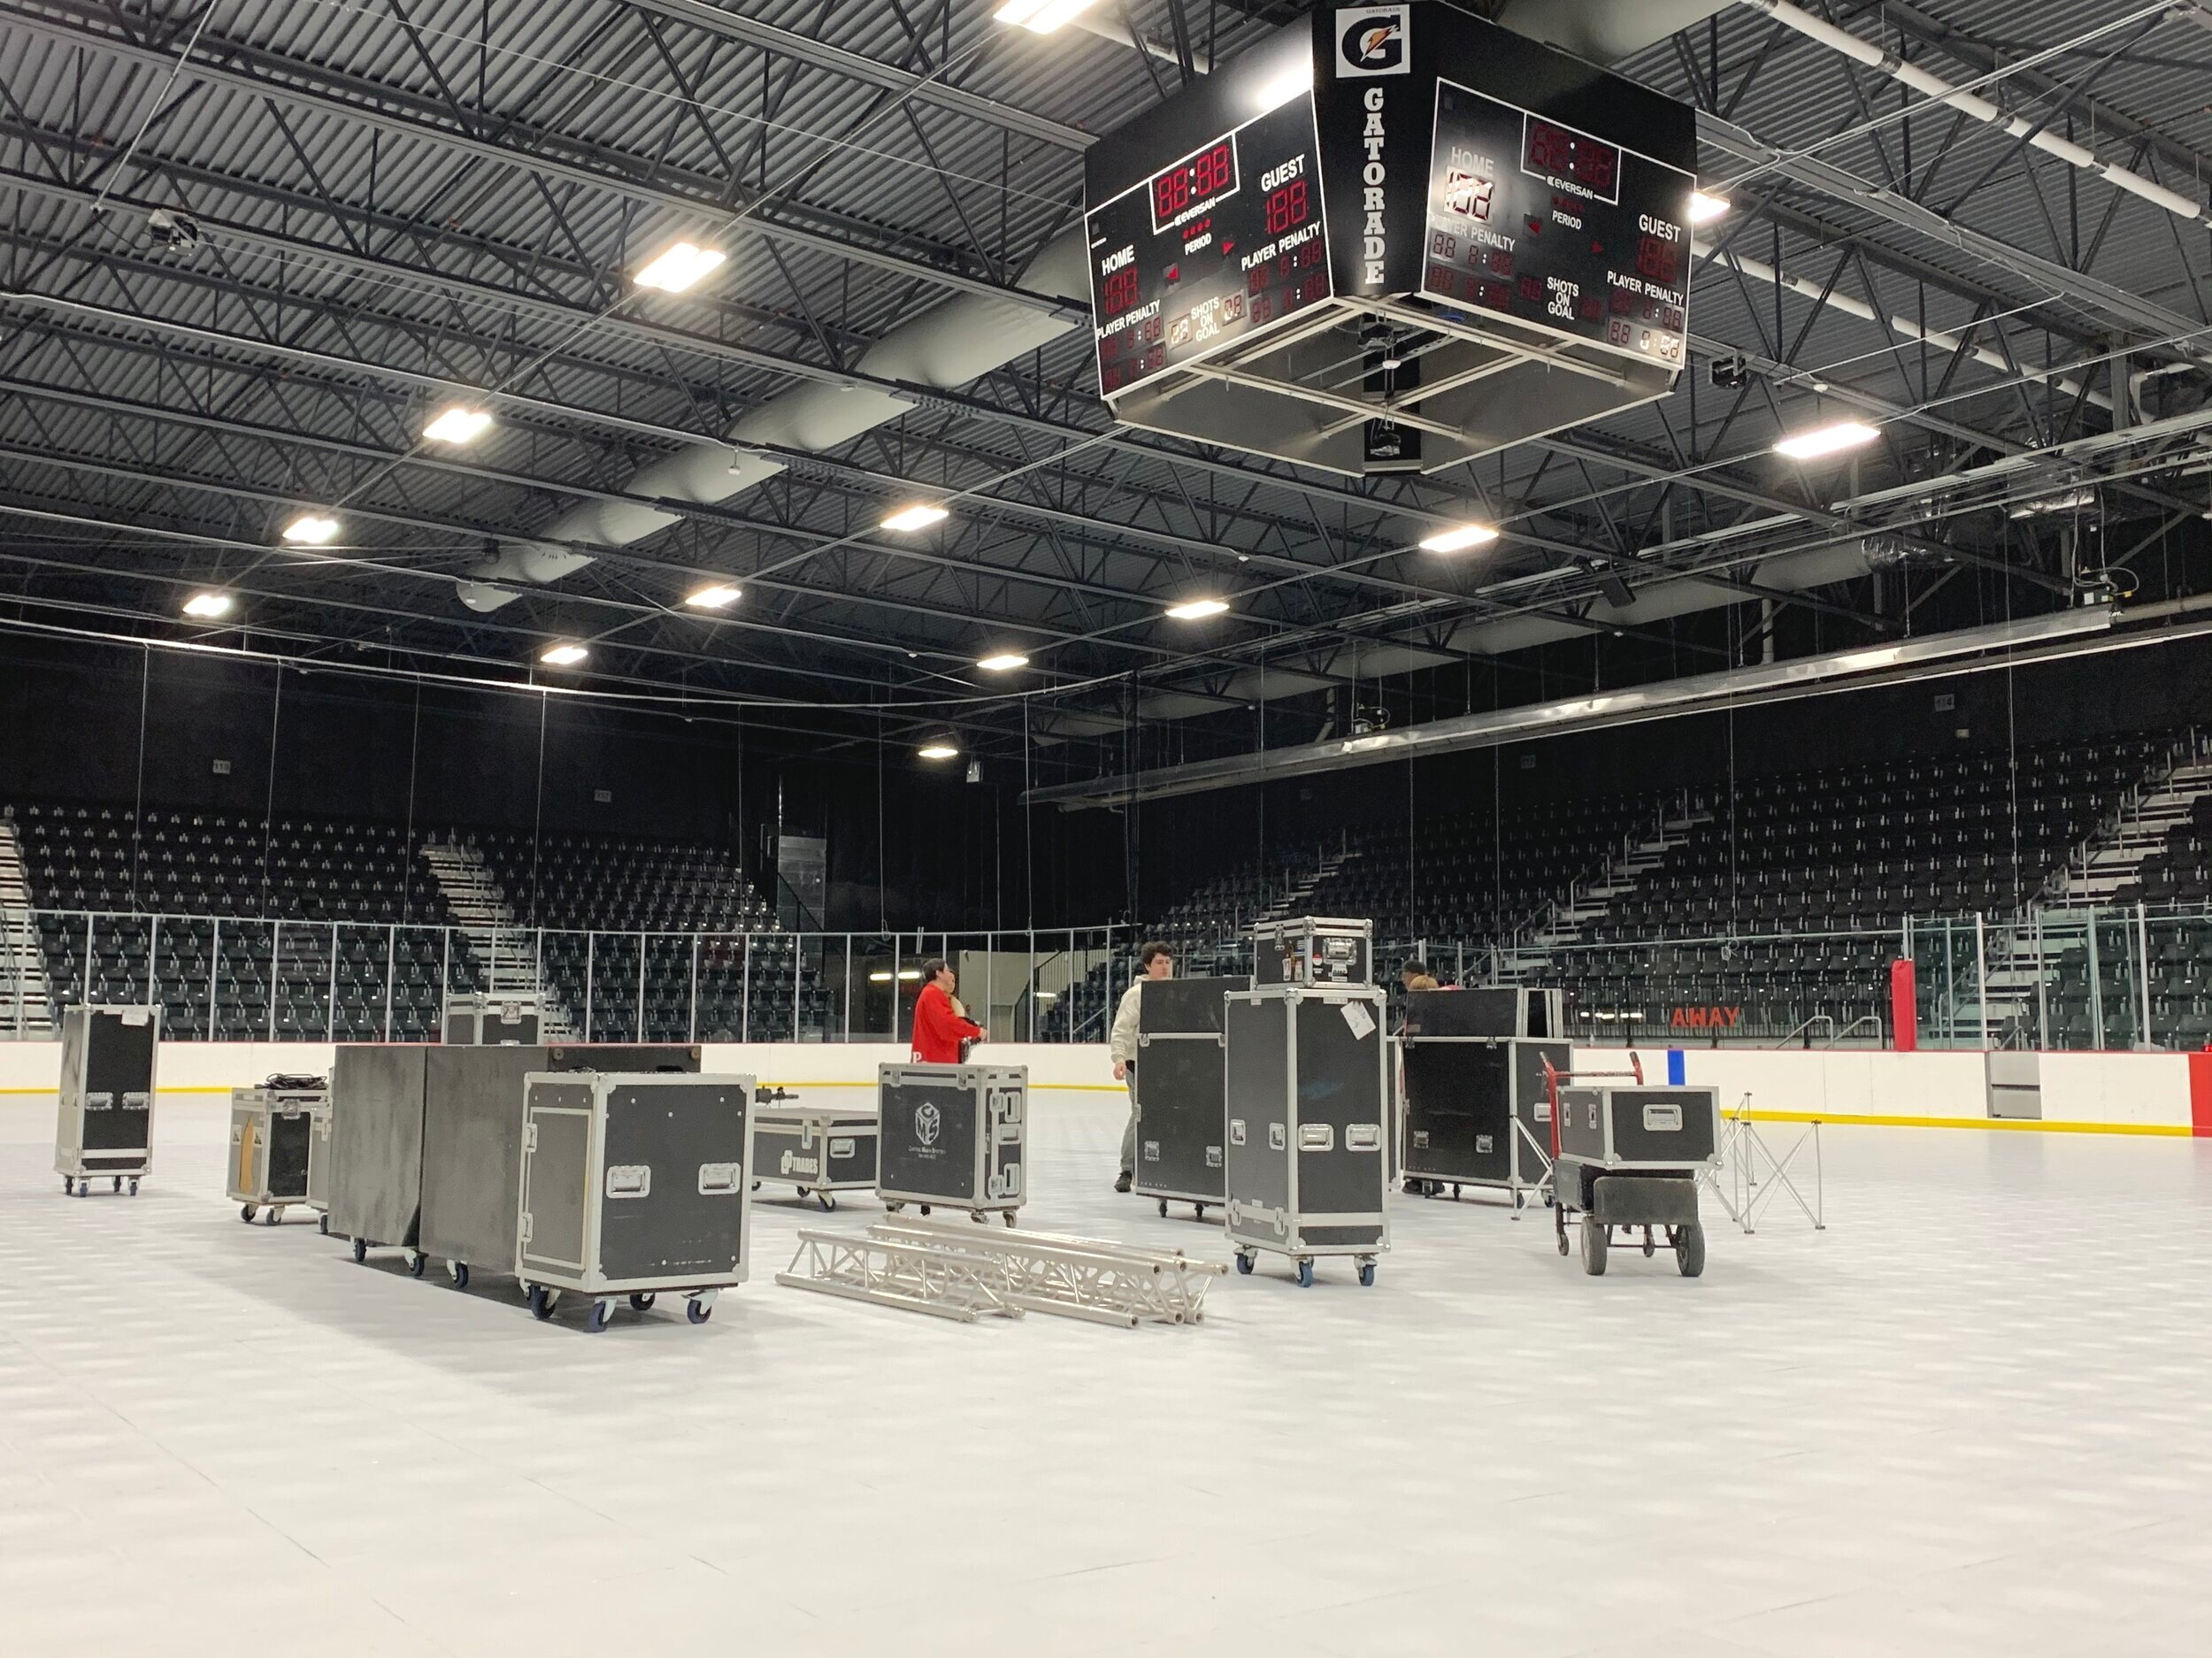 Move rolling cases and equipment on the arena floor.